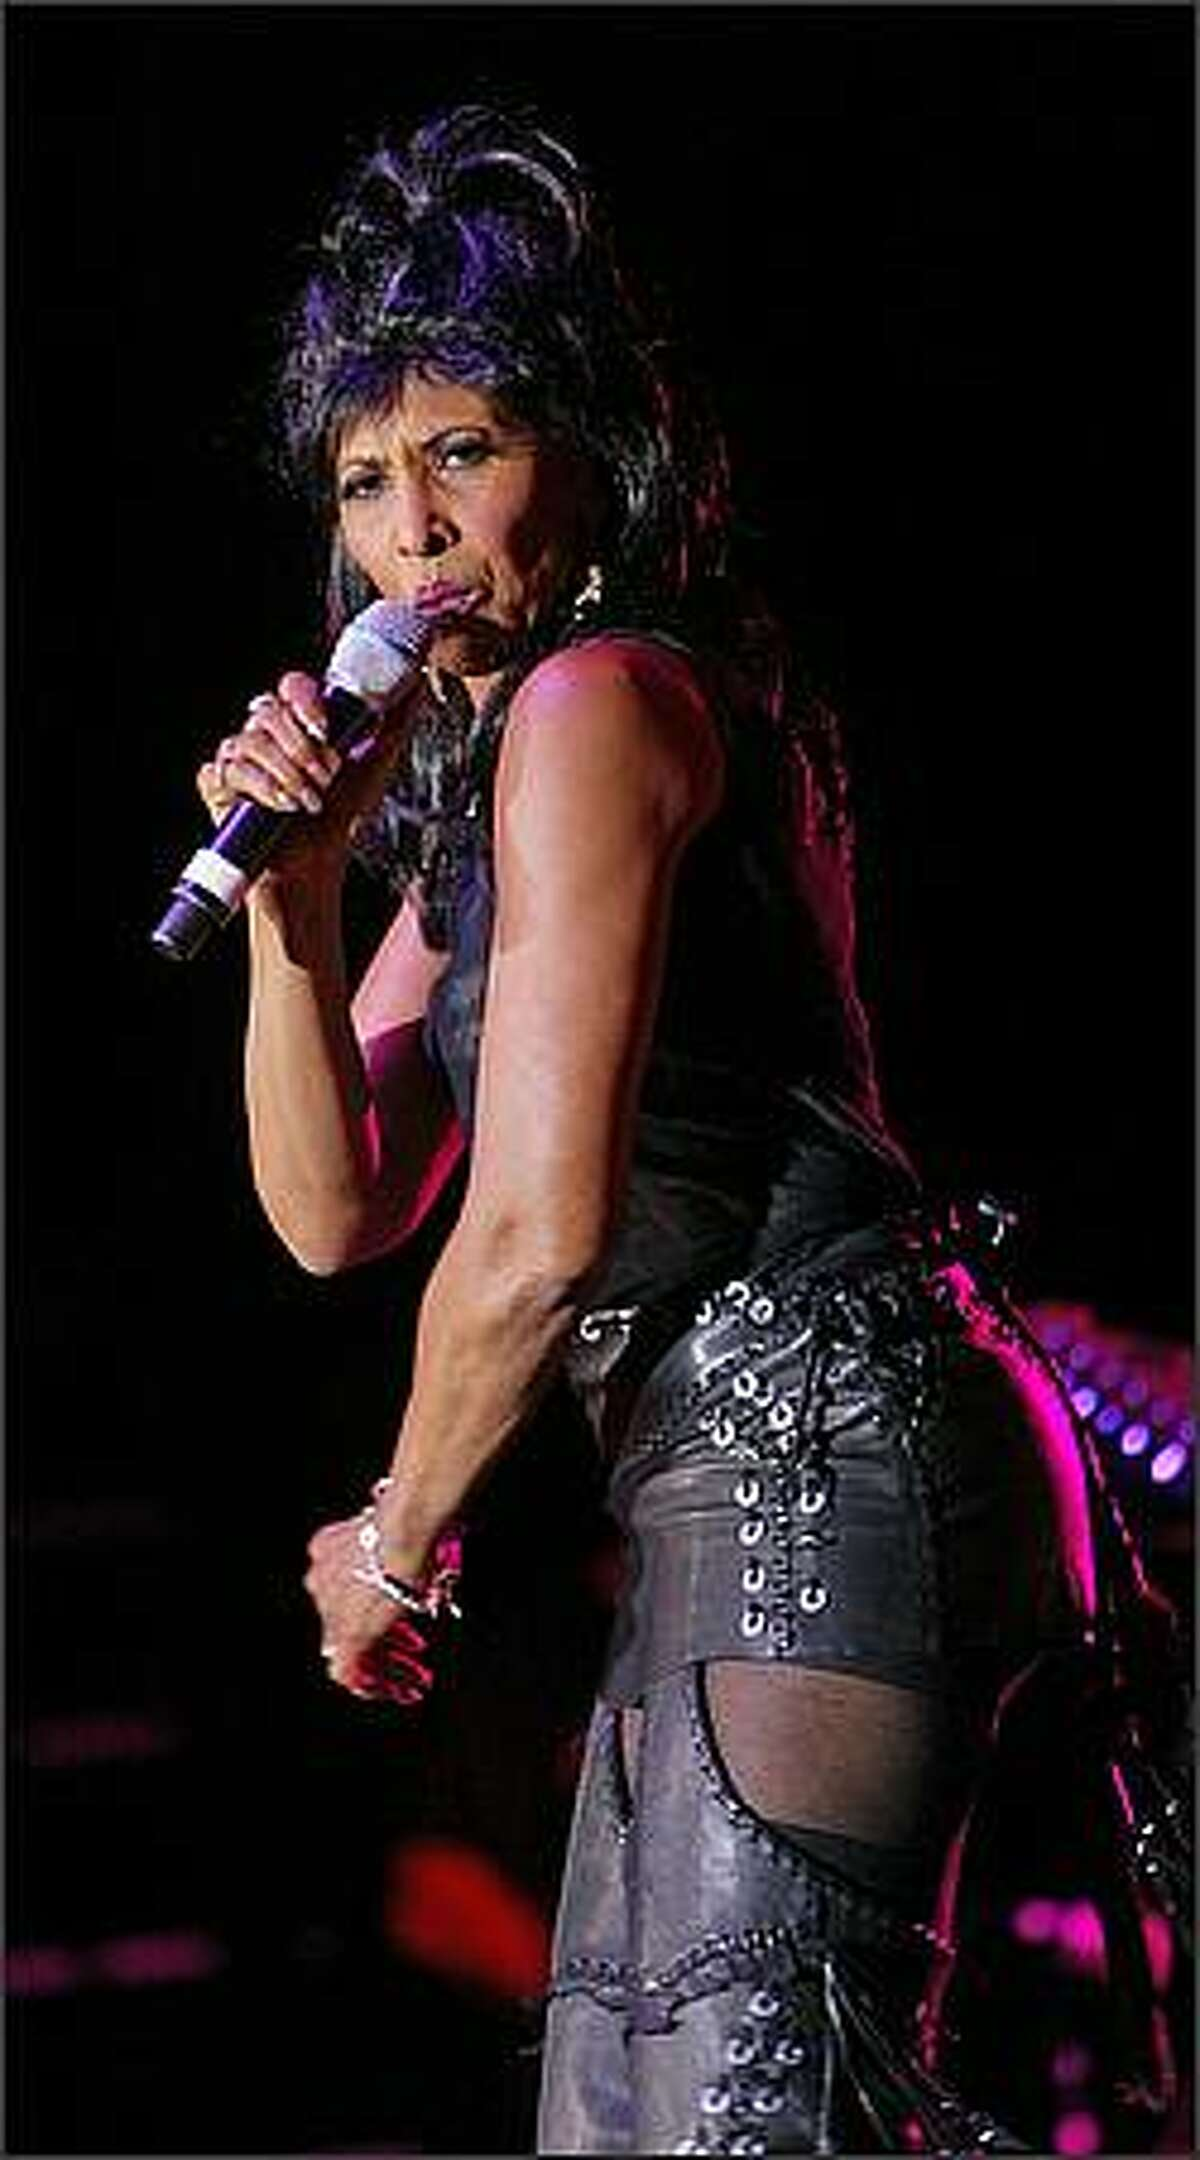 Nona Hendryx performs at the True Colors Tour at WaMu Theater.